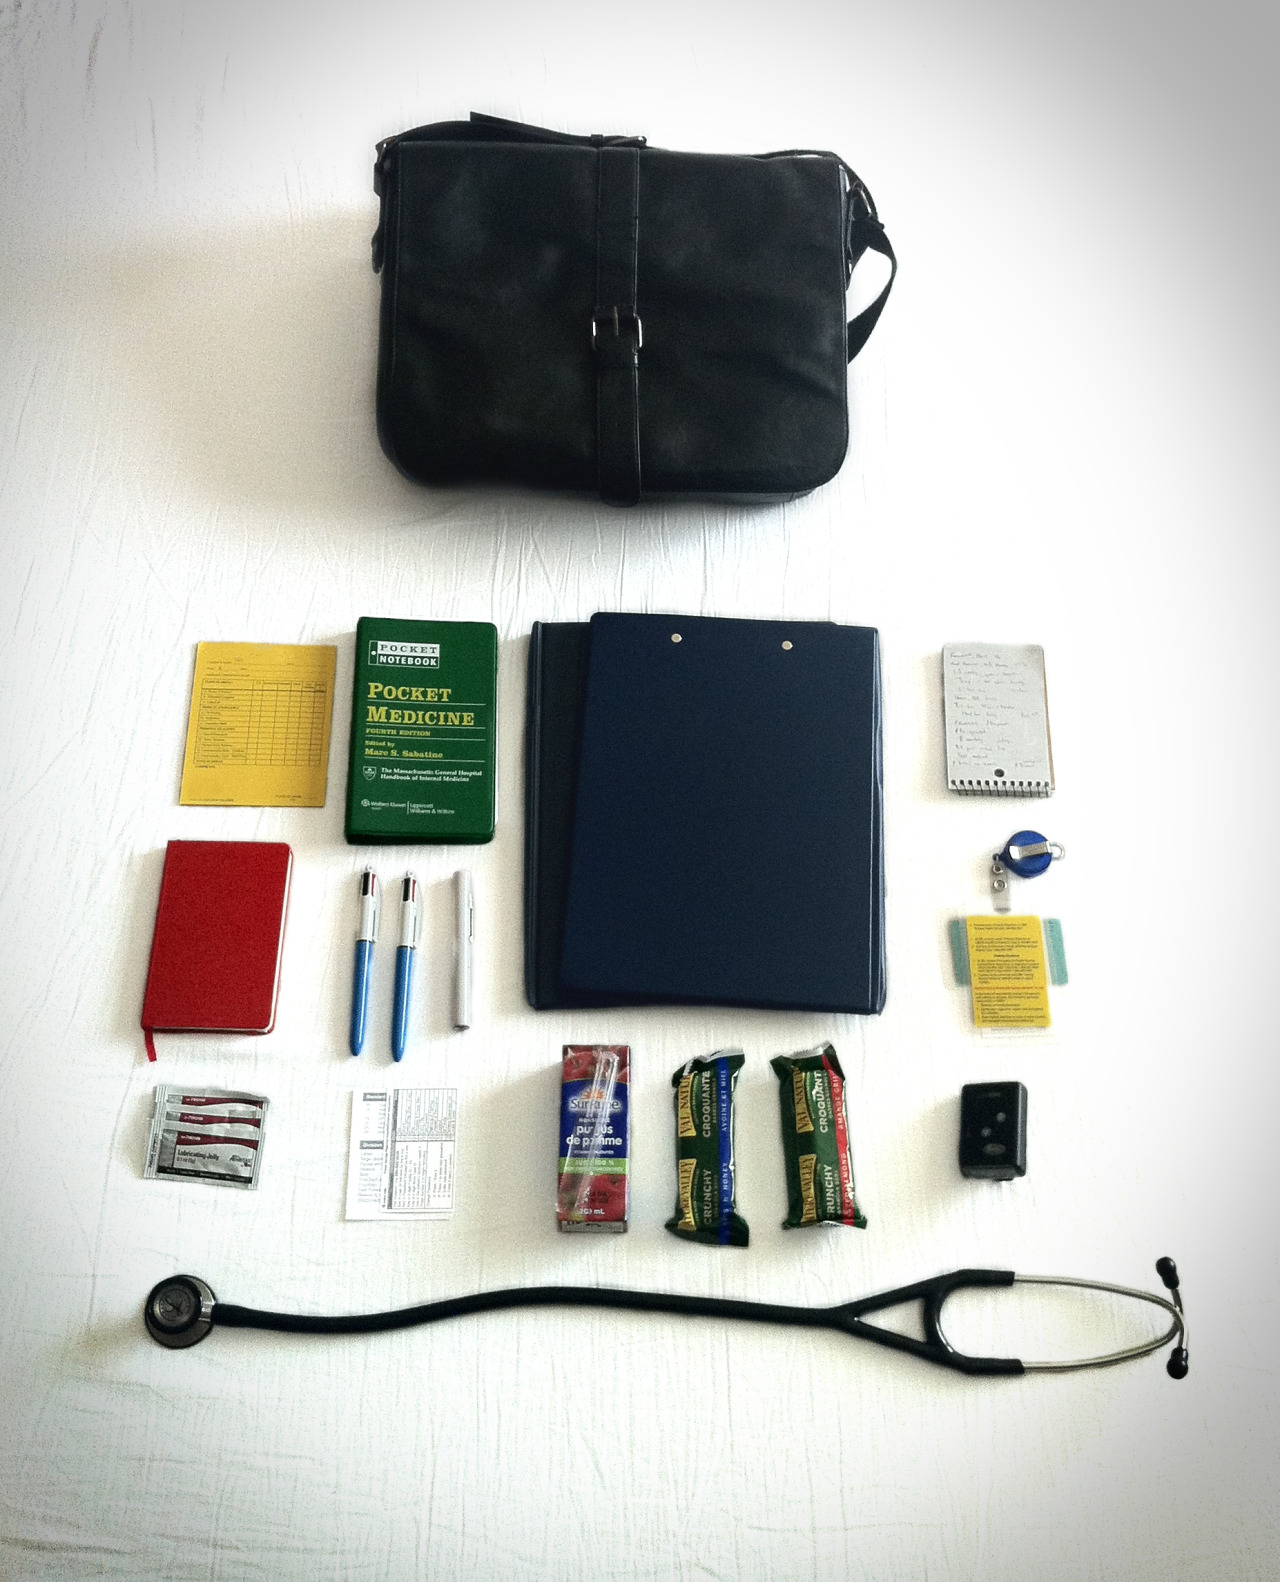 medicalstate:  The Satchel. Through thick and thin, my satchel has accompanied me through medical school. Initially, it strictly carried books and papers; now it is a repurposed bag for a clinical life. I talked briefly about what I usually carry with me in my first clinical pearl post. In response to Wayfaring MD's post, I thought I would share what I actually bring with me. These are my standard issue items, with room for switching or adding more items as needed: Satchel Pocket evaluation forms: For clinical skills and procedures. Pocket Medicine: A compact book for diagnostics, investigations and laboratory values. Two clipboards: The first contains regular paper for note taking including pre-printed progress notes and other chart-related forms; the second contains preceptor documentations including more formal evaluation sheets, outcomes checklists as well as my weekly schedule. The notepad: Where I write and gather my patient information and keep the to-do list for the patients I am responsible for. Moleskin notebook: Where I keep rotation specific clinical pearls and other tips and tricks. Two pens: Always keep a back up pen. Always. Pen light: For the quick neurological screen. ID cards Three packs of lubricating jelly: Need to do a digital rectal exam or a bimanual exam? Gloves are everywhere but these are not. Access codes and contact list Juice box Two granola bars Pager: How I wish this could not be standard issue. Stethoscope: If I am not walking around with it around my neck, it goes back into the bag until its next calling. Other items that I will sometimes include are rotation specific pocketbooks, headphones, and my phone charger to name a few. To the medical readers, what do you carry with you? Tag your response with #what's in your pocket.